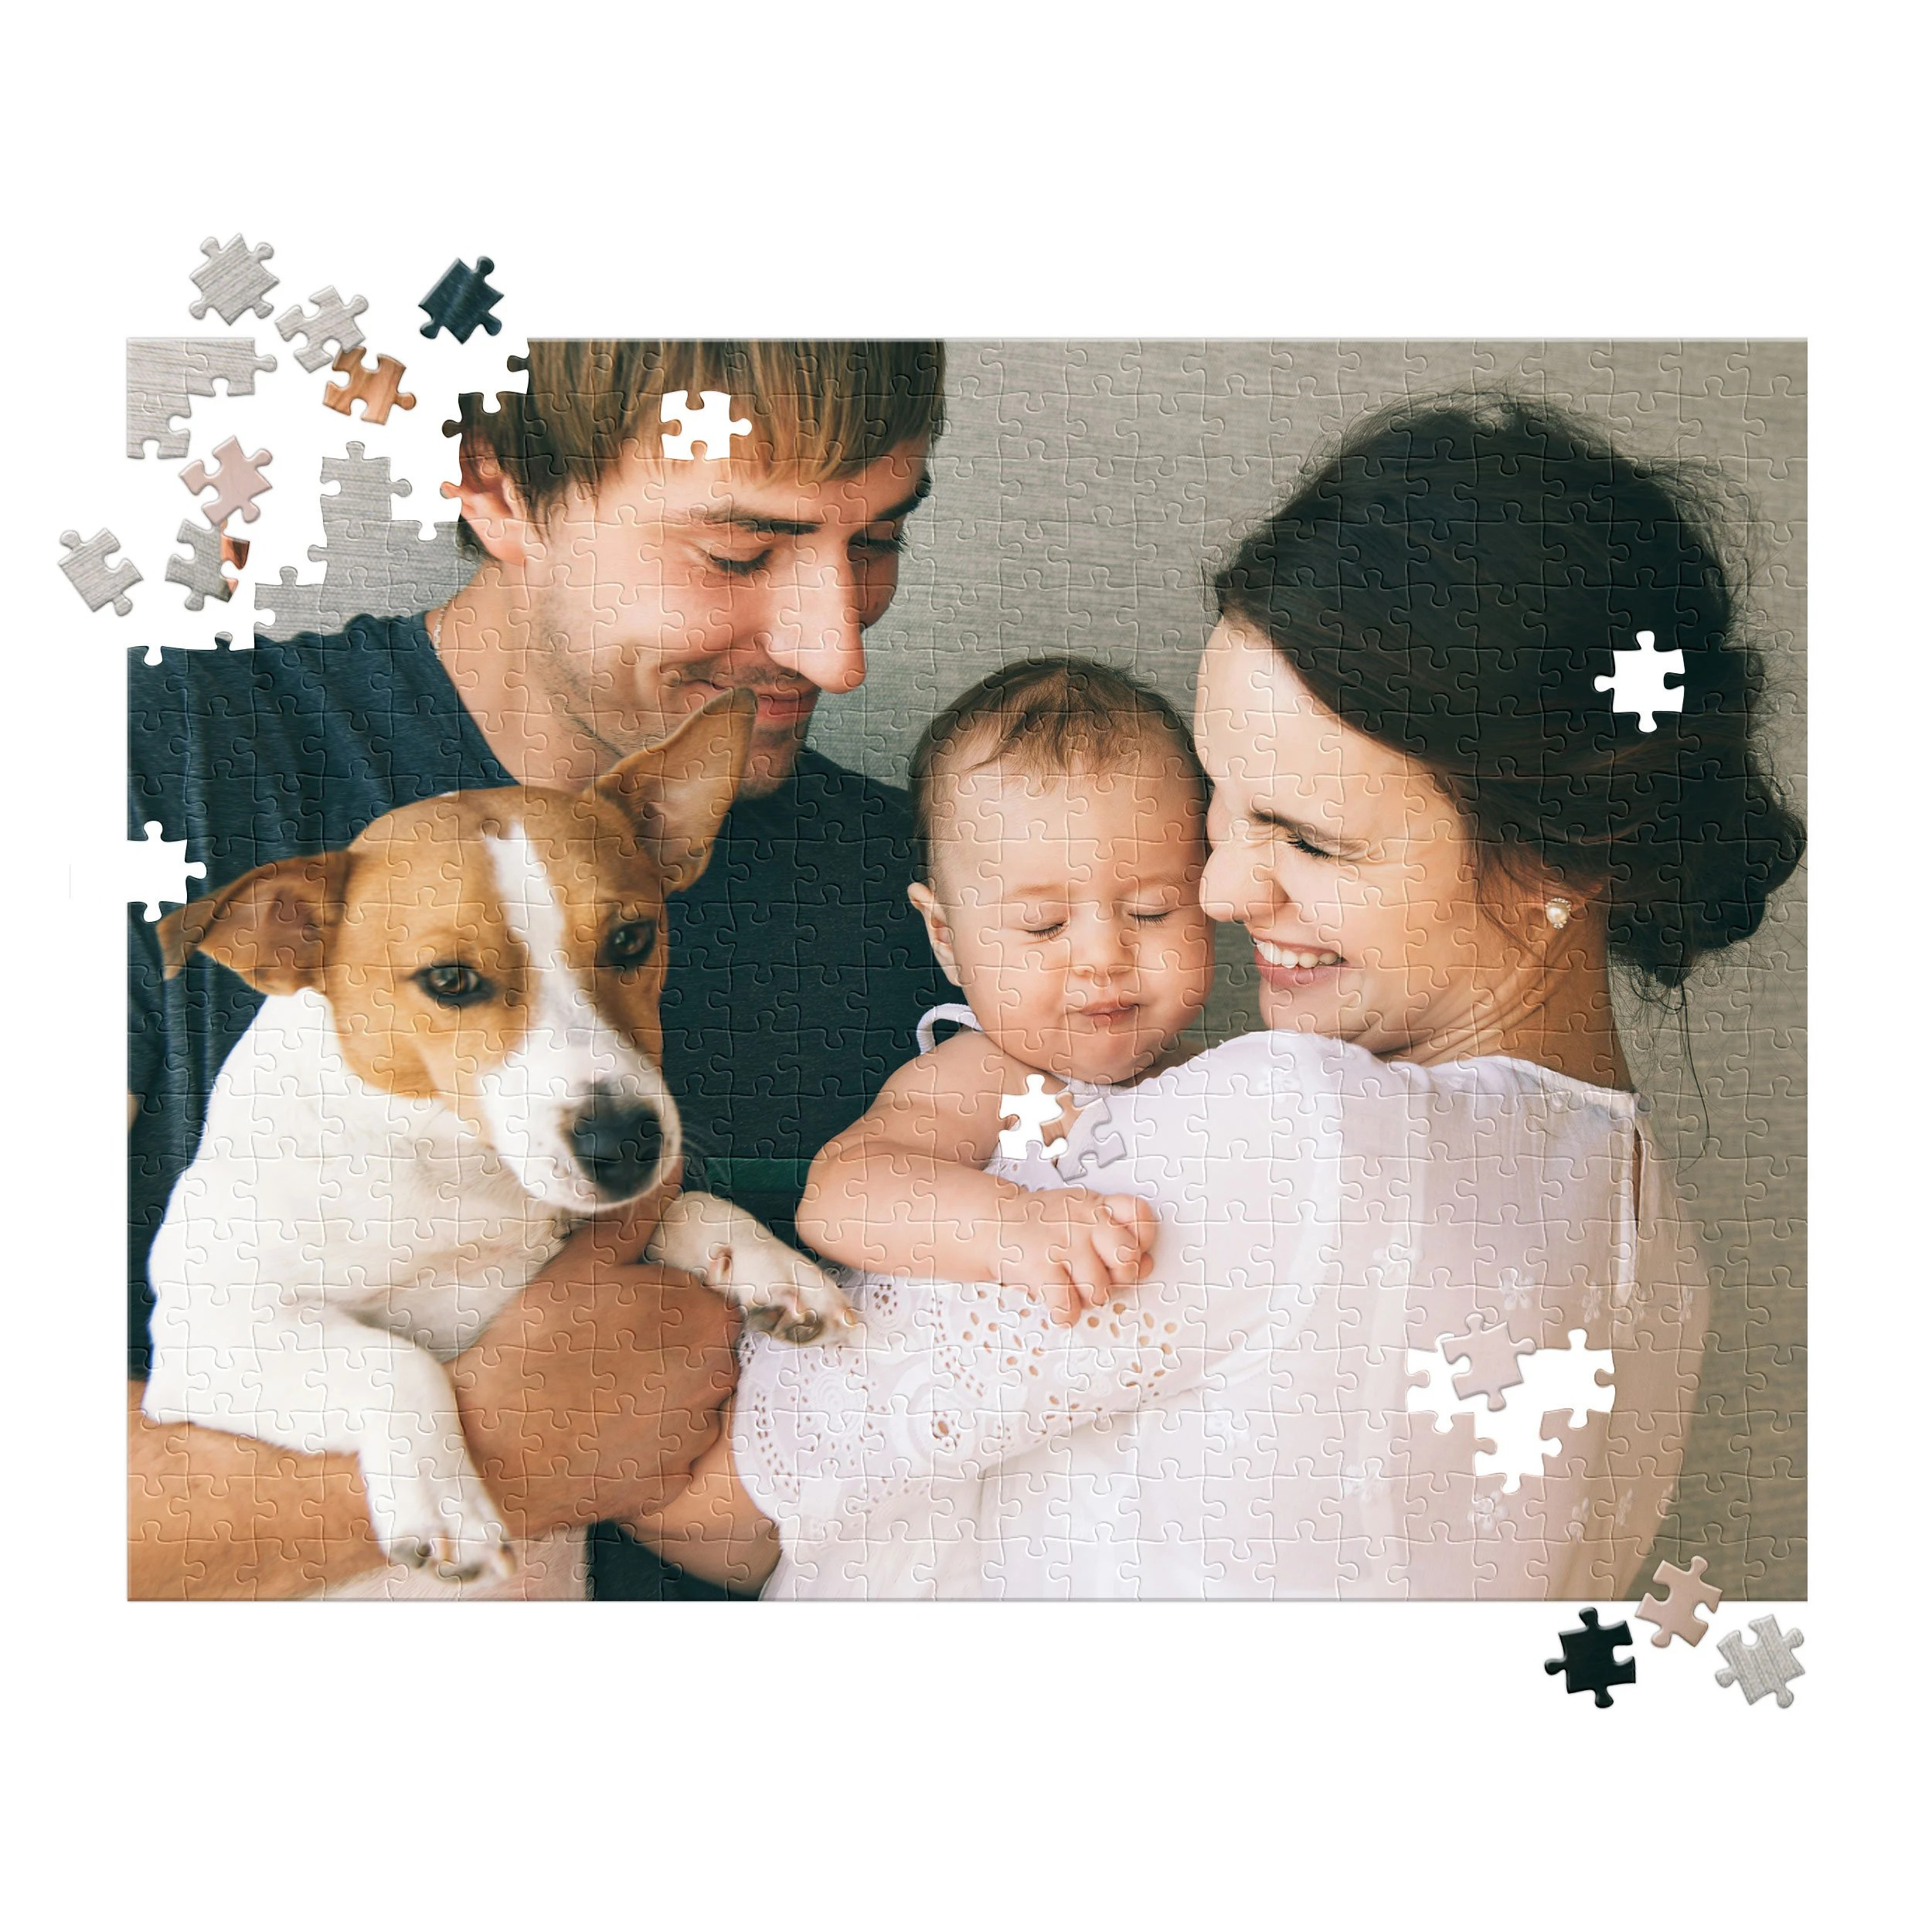 Custom Puzzle for Adults 500 Piece  Father's Day Gift for image 1